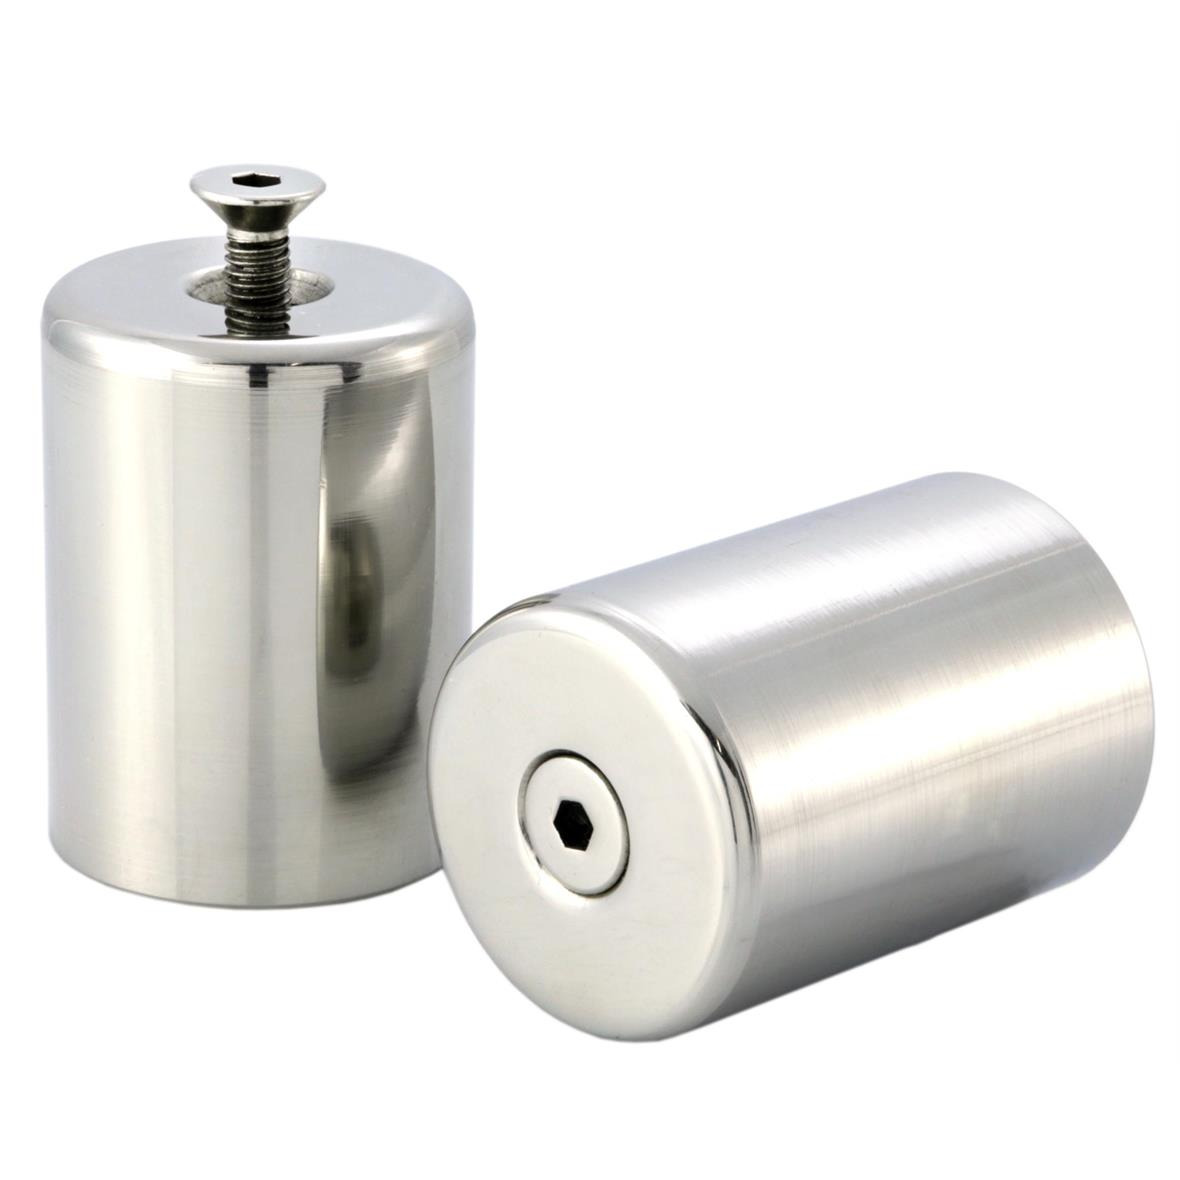 Product Image for 'Handlebar End Weights, Heavy DutyTitle'